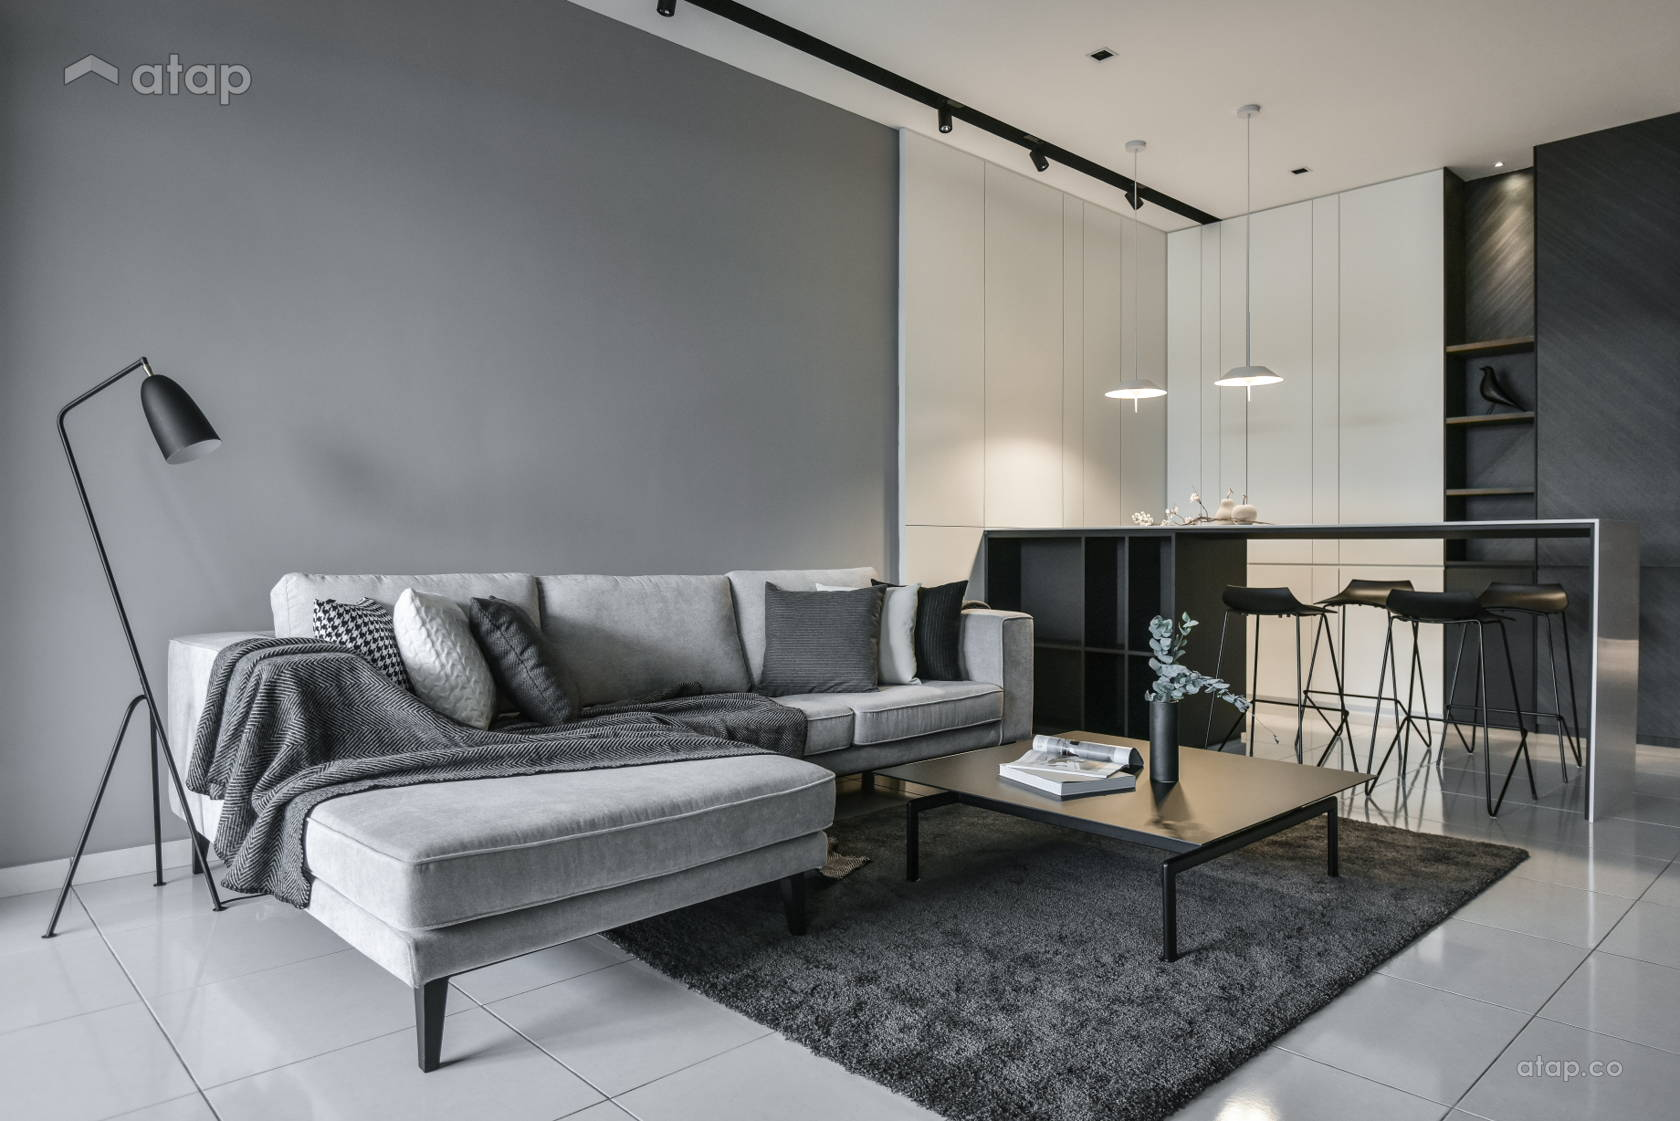 Minimalistic Scandinavian Living Room @ Dark brightness - Double storey terrace at Klang